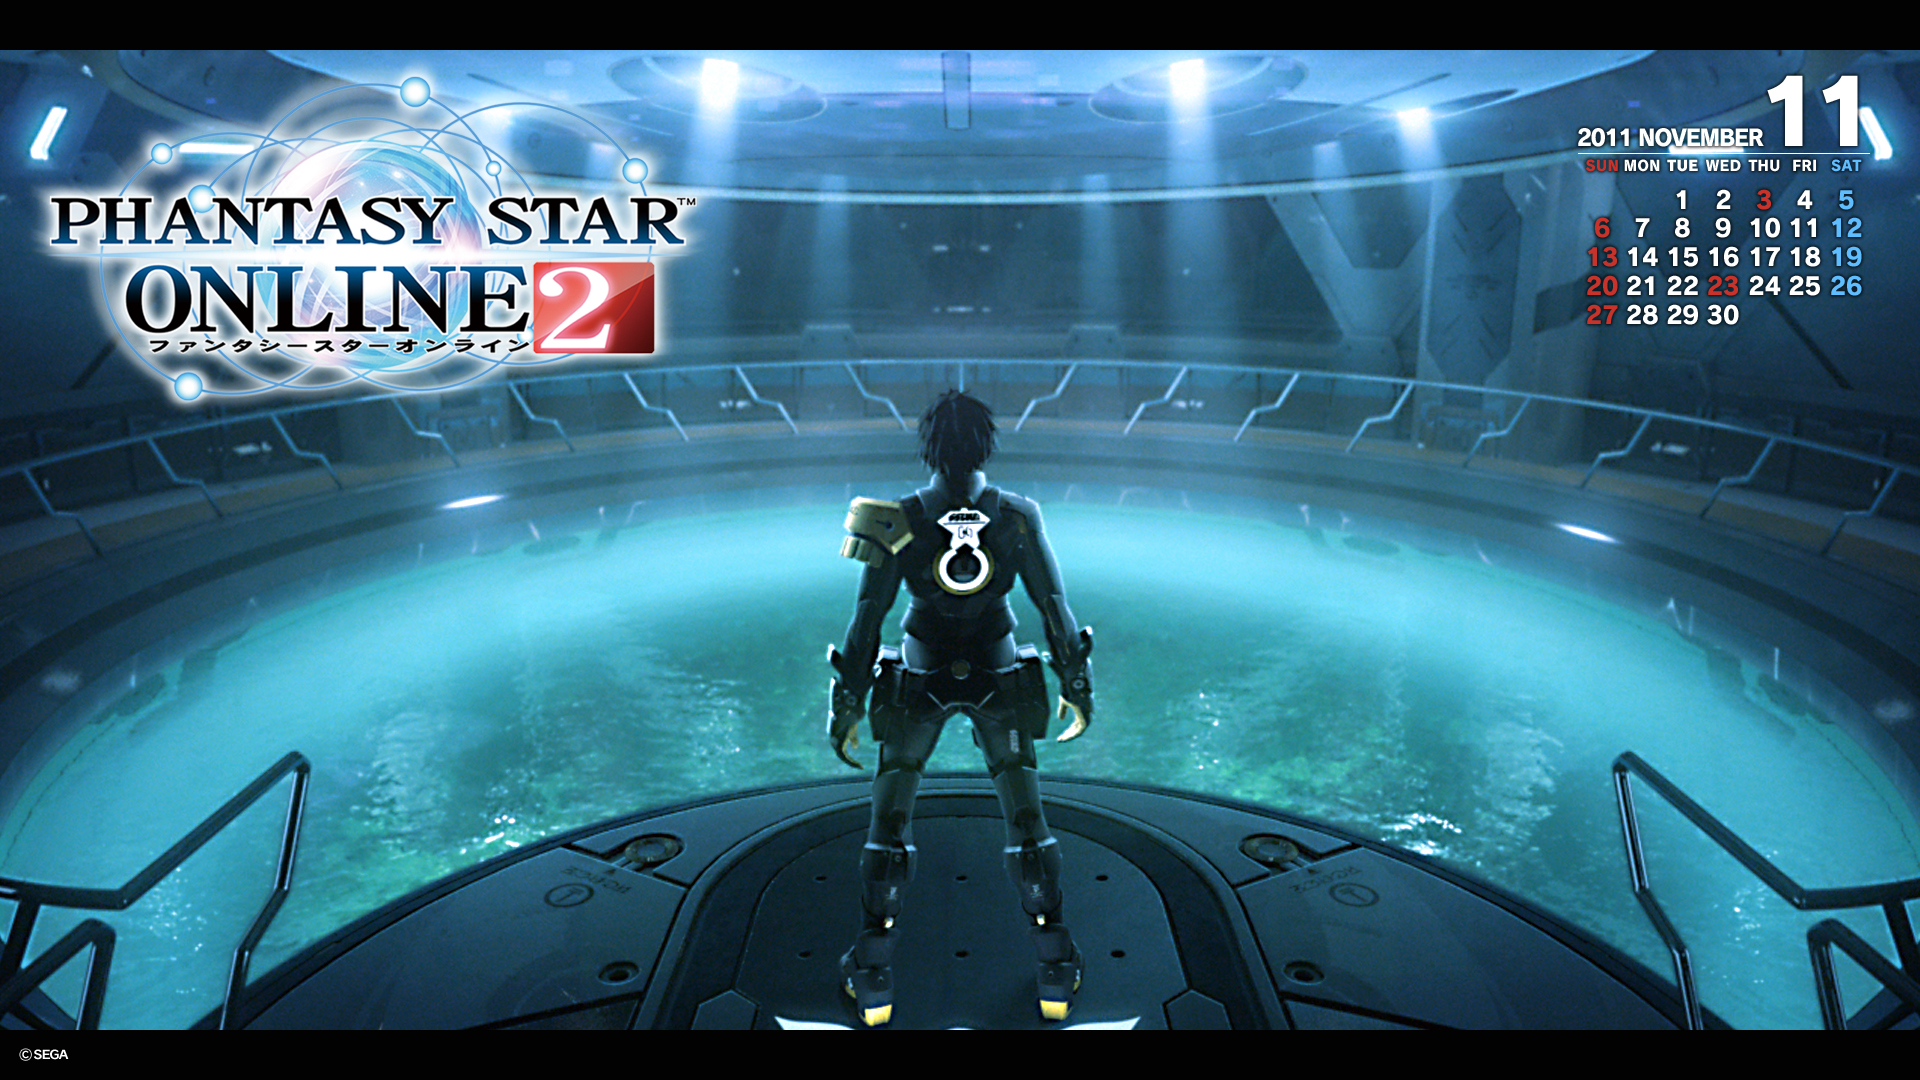 phantasy star online 2 camp ship and project cute | psublog